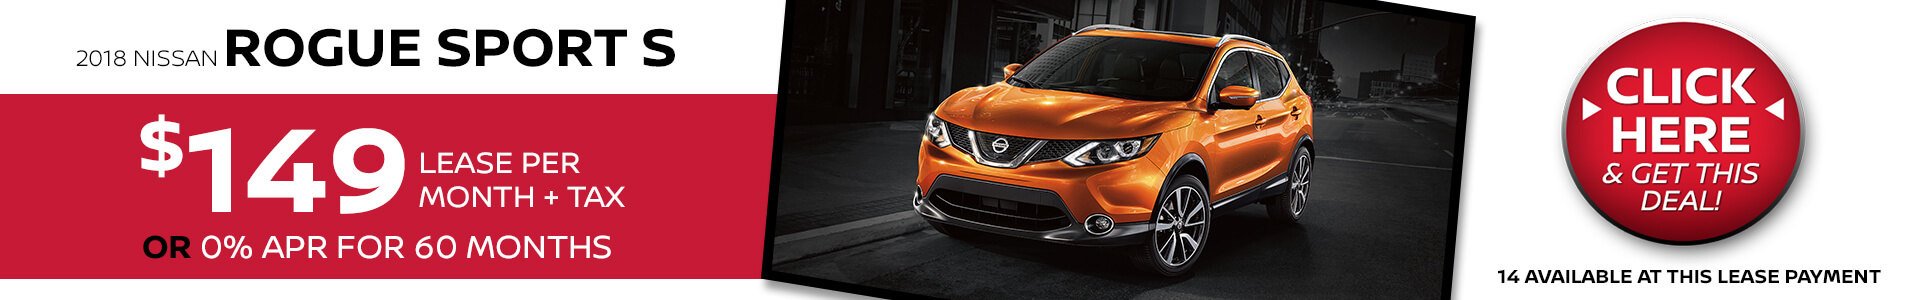 Nissan Rogue Sport $149 Lease